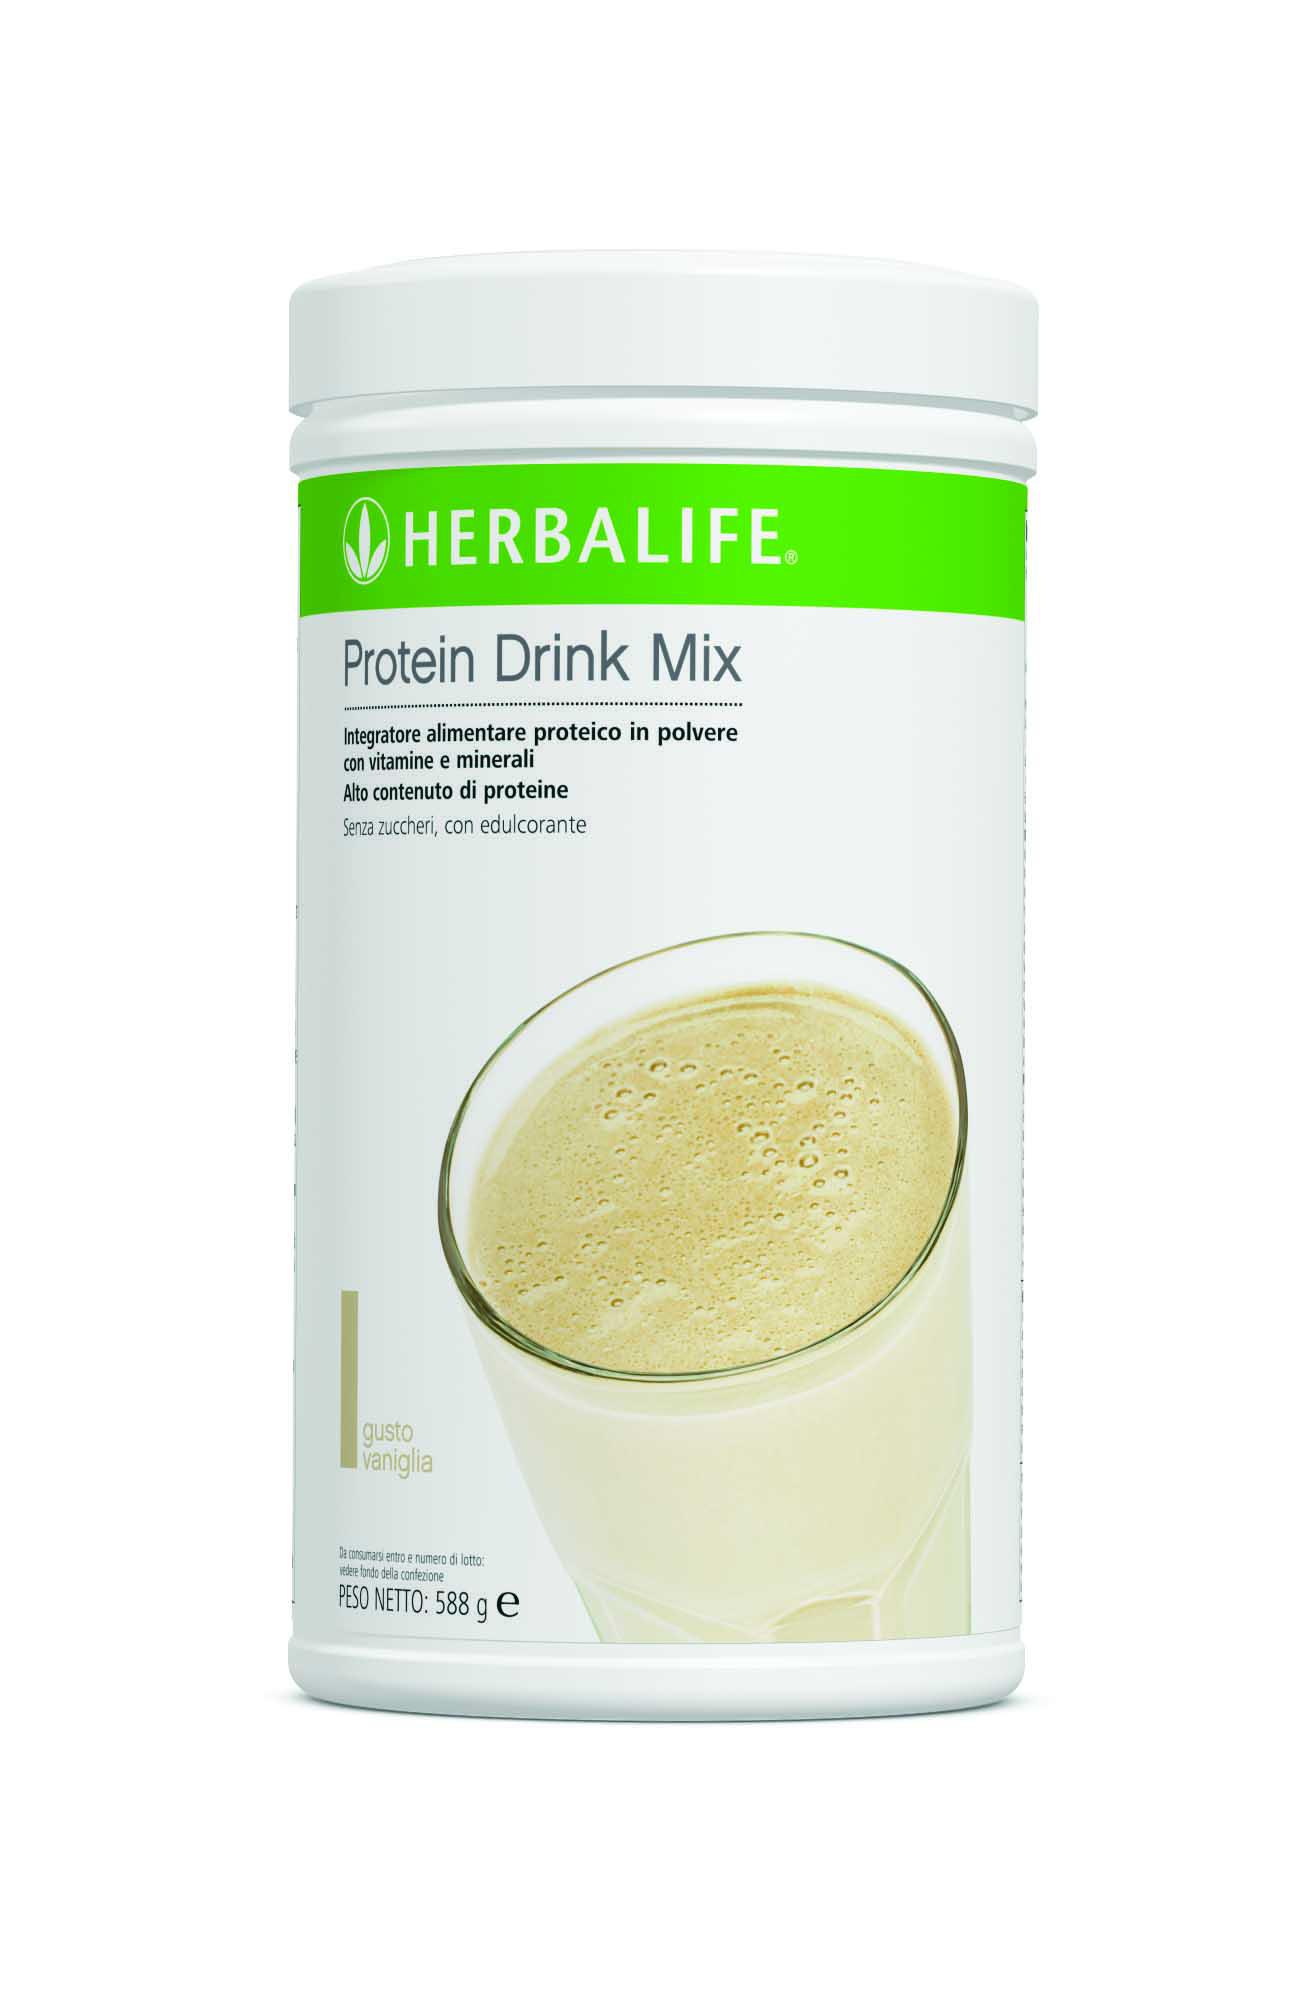 PROTEIN DRINK MIX - HERBALIFE